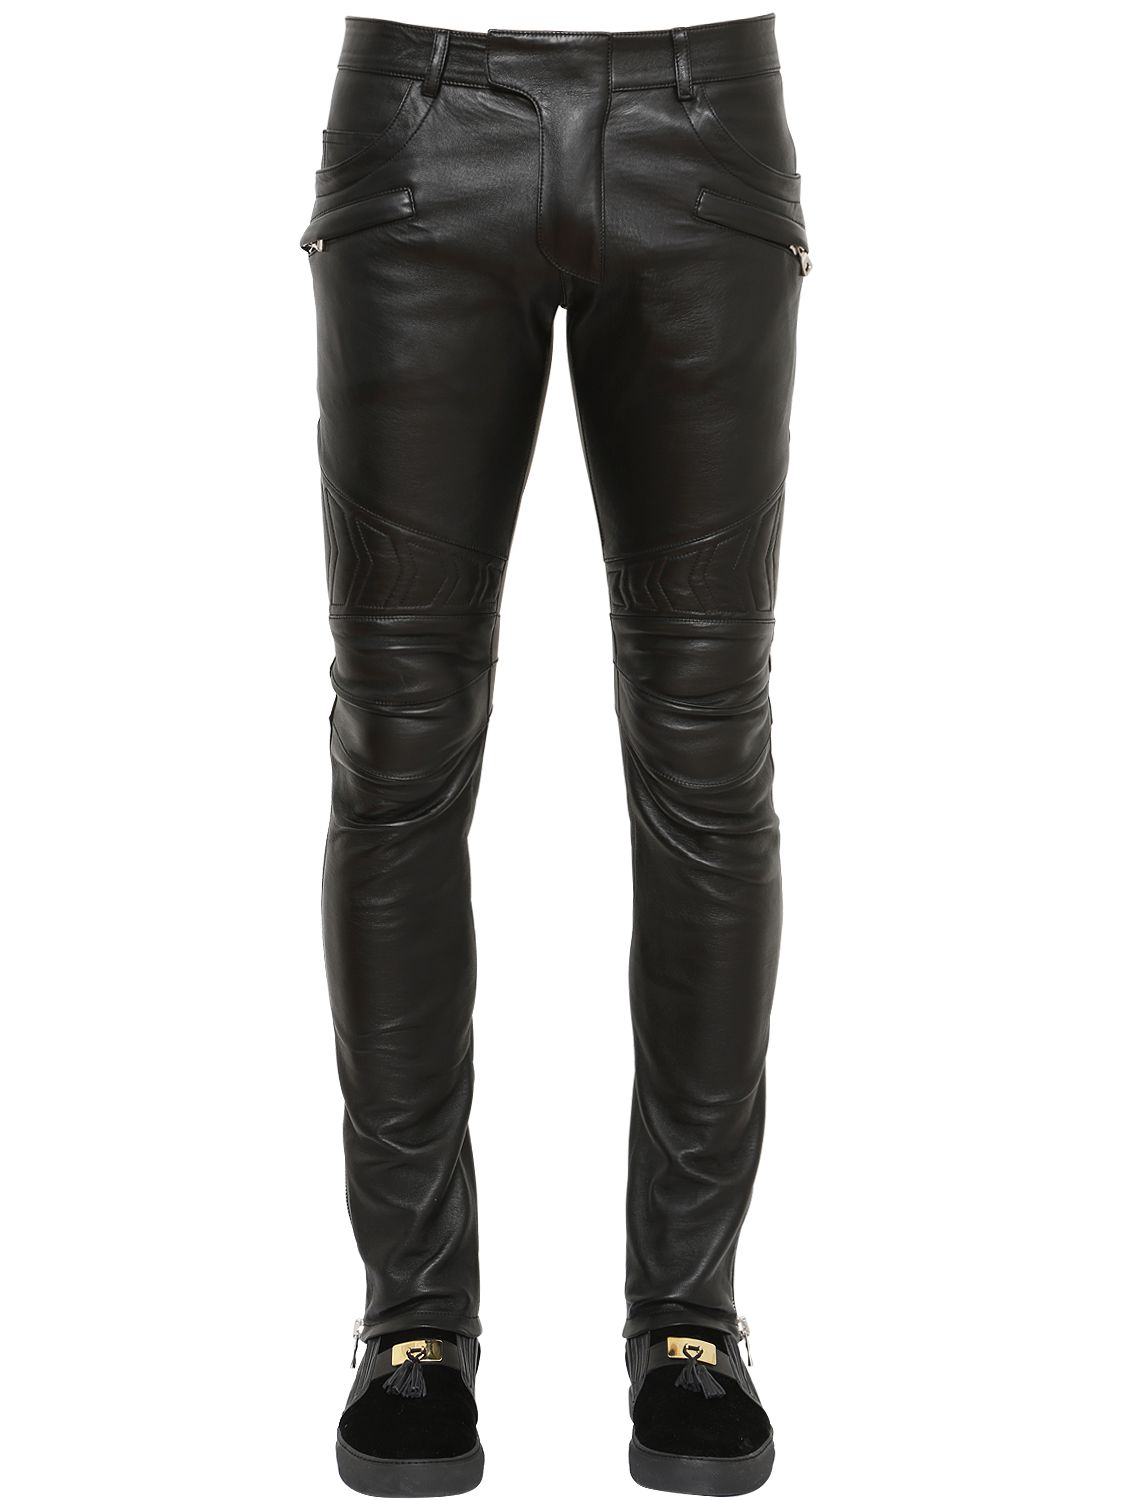 NWT $ Pierre Balmain Men's Black Leather-Trim Jogger Pants Size 56/40 September 3, admin This item is new, If you have any further questions regarding the condition of .